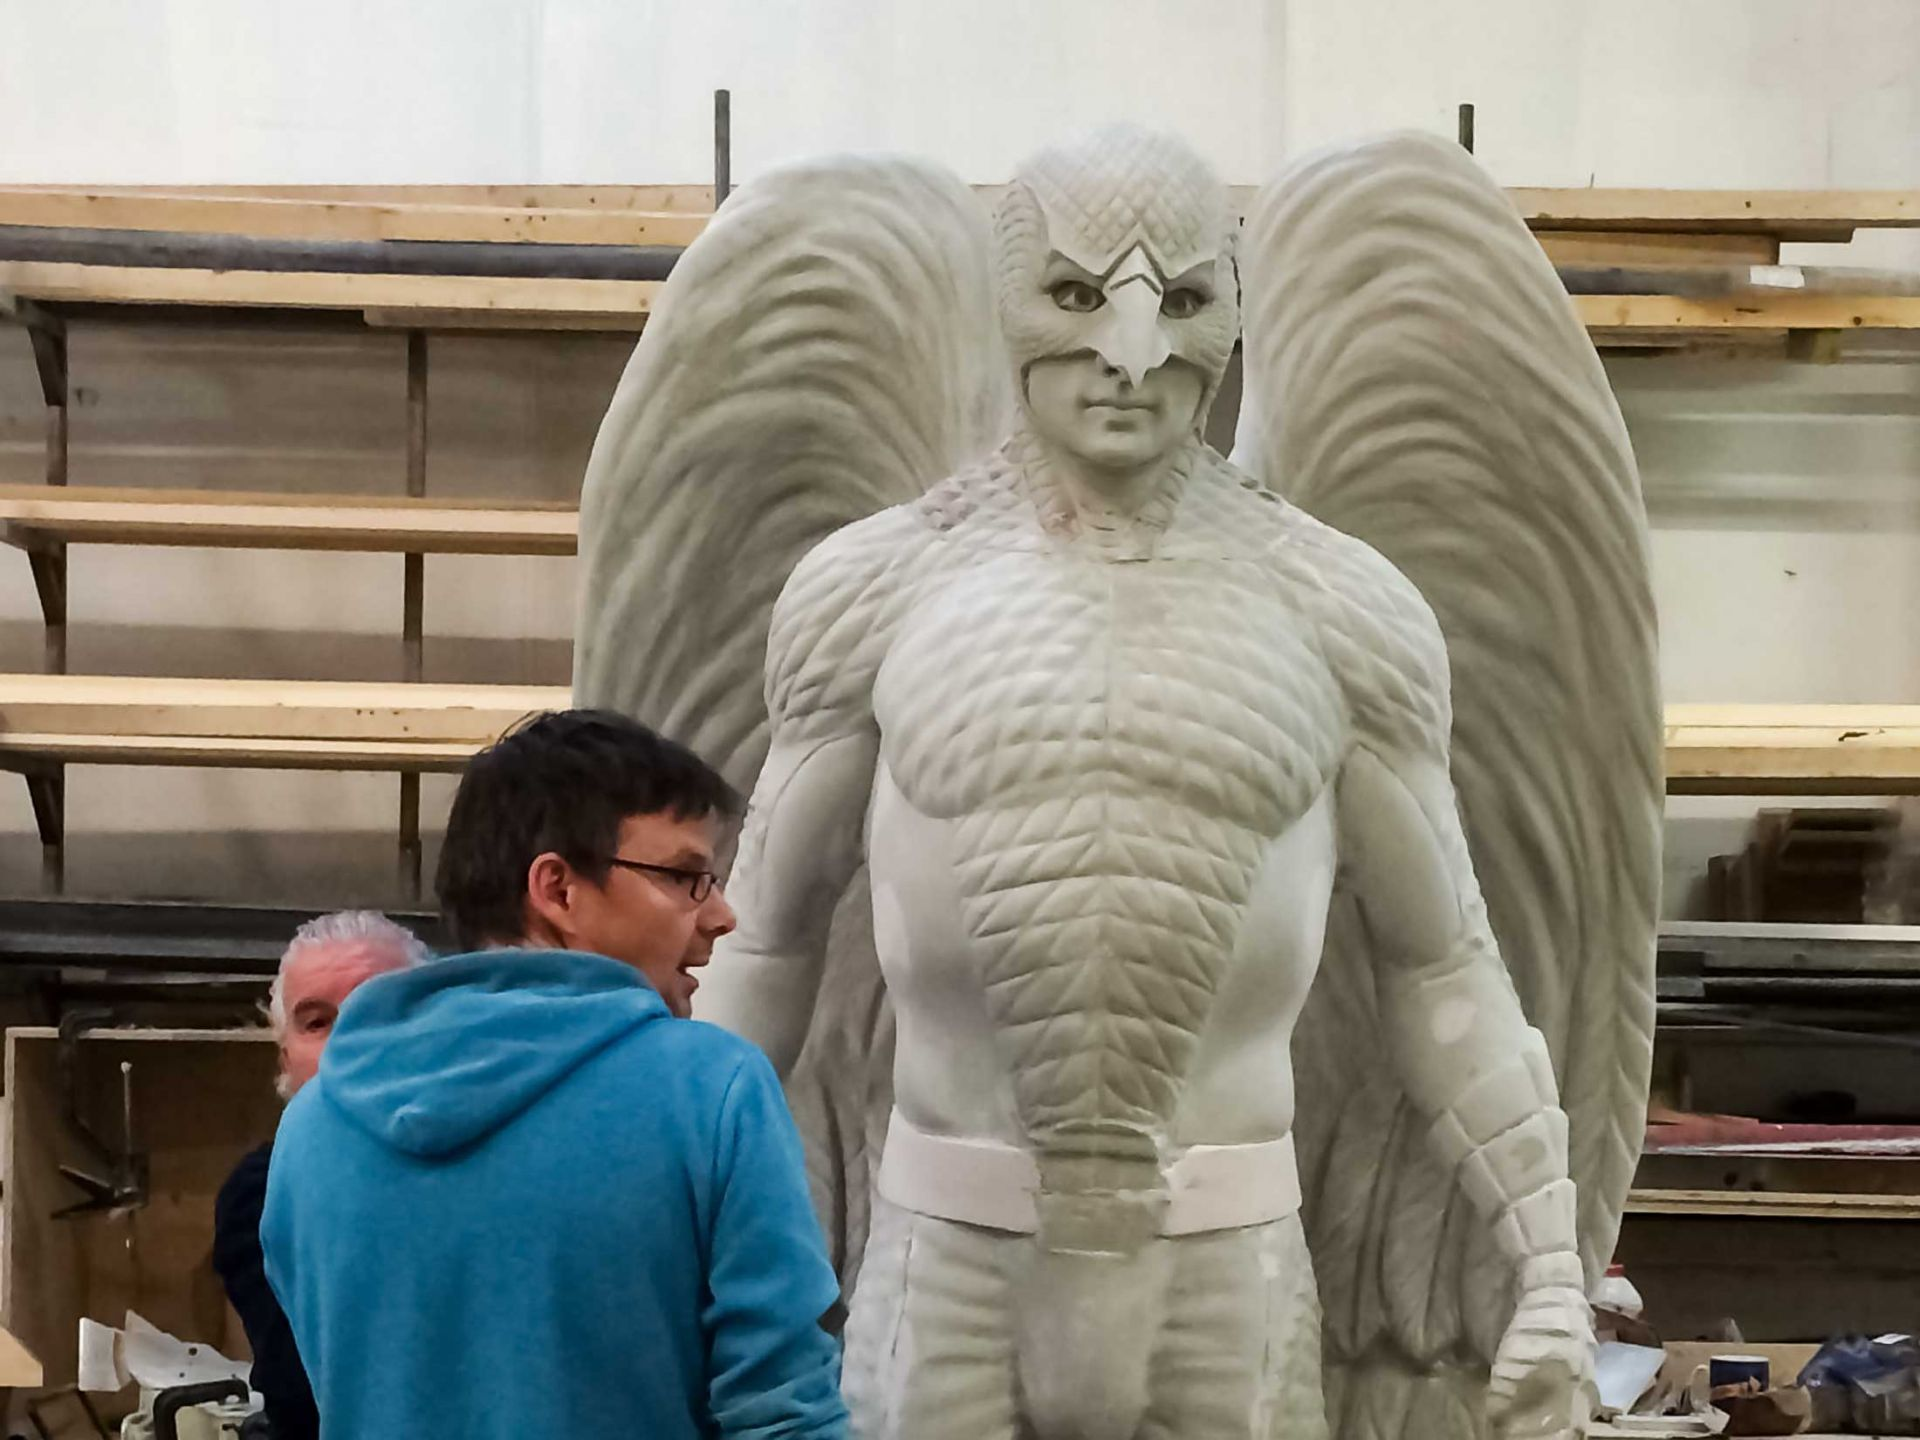 Giant sculpture of birdman moulded and casted.